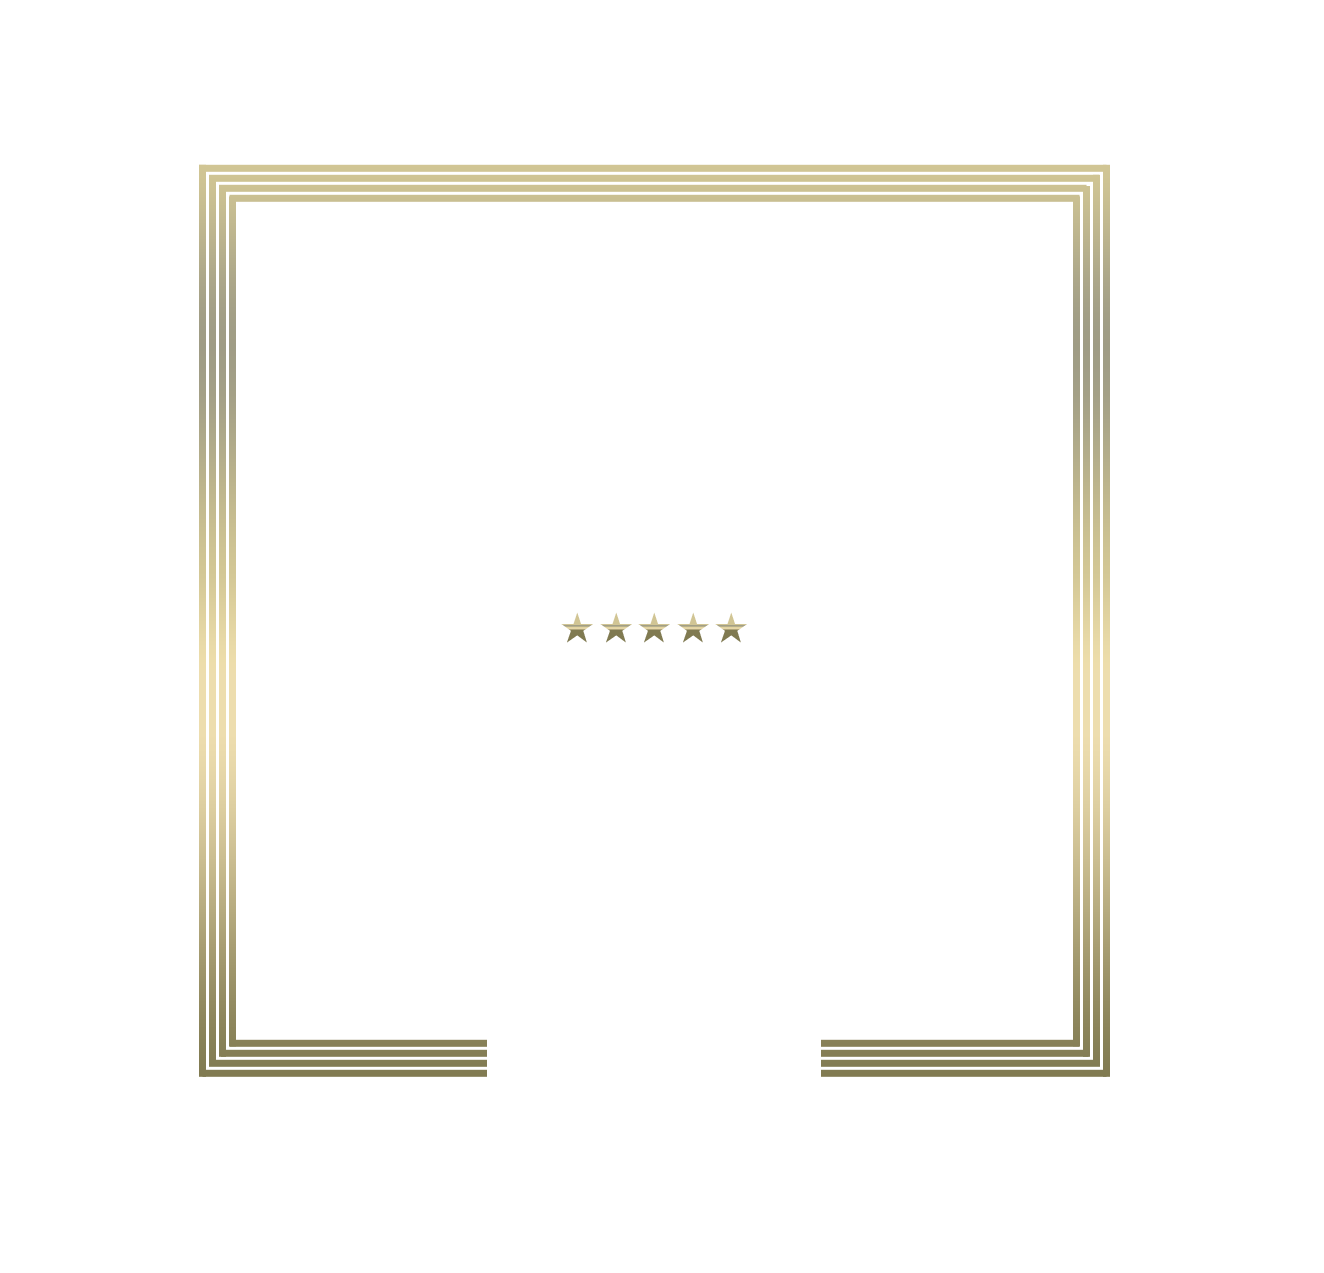 Welcome to the hotel SA AUBERGE DE CASSAGNE